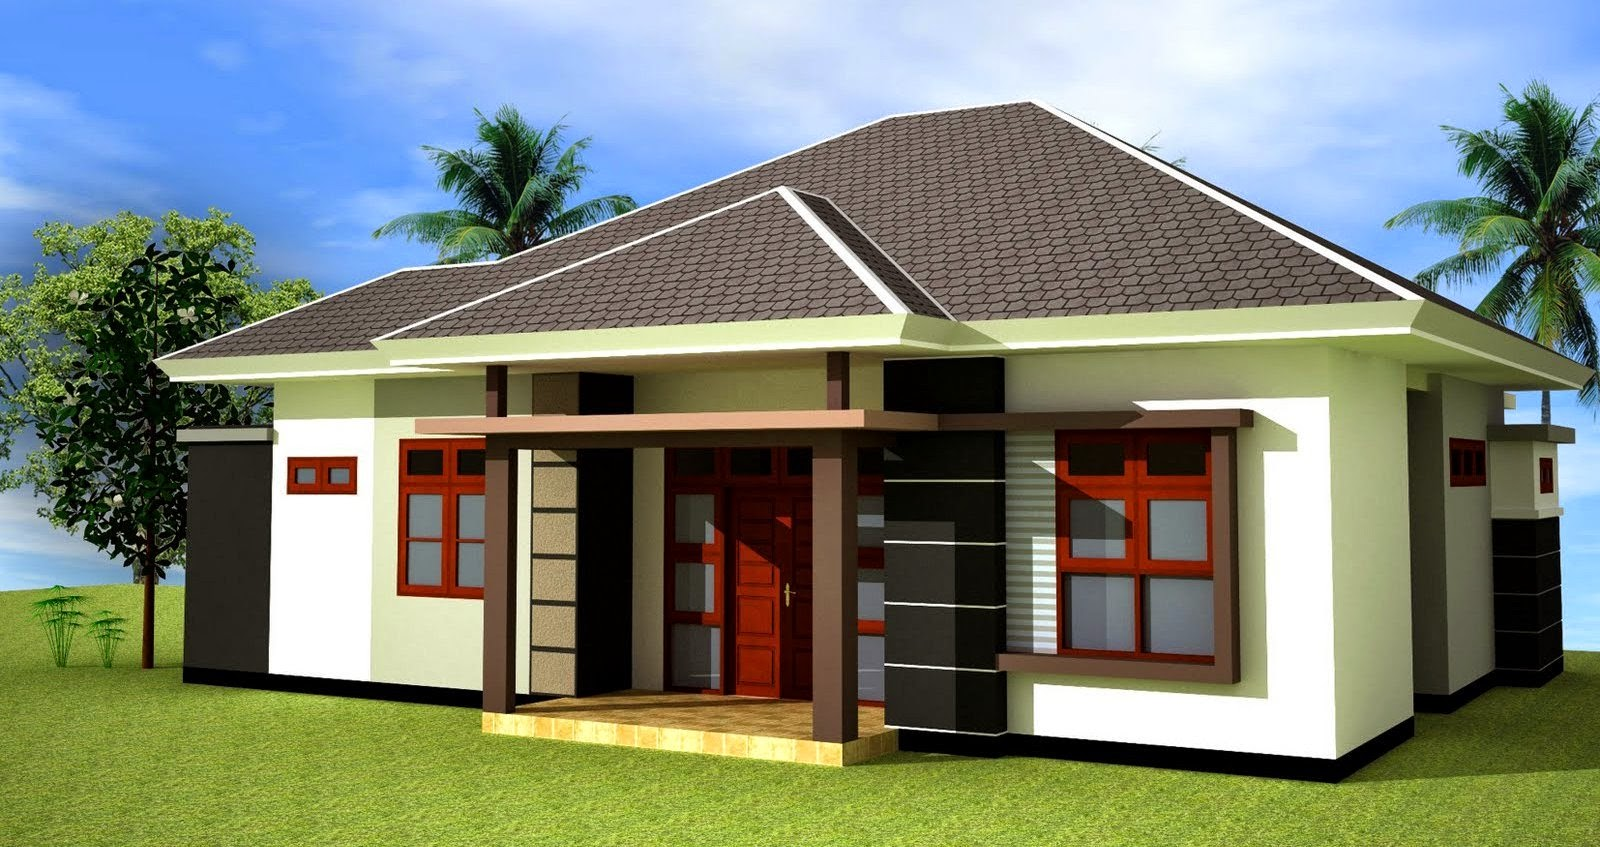 Model rumah favorit holidays oo for Design rumah mimimalis modern